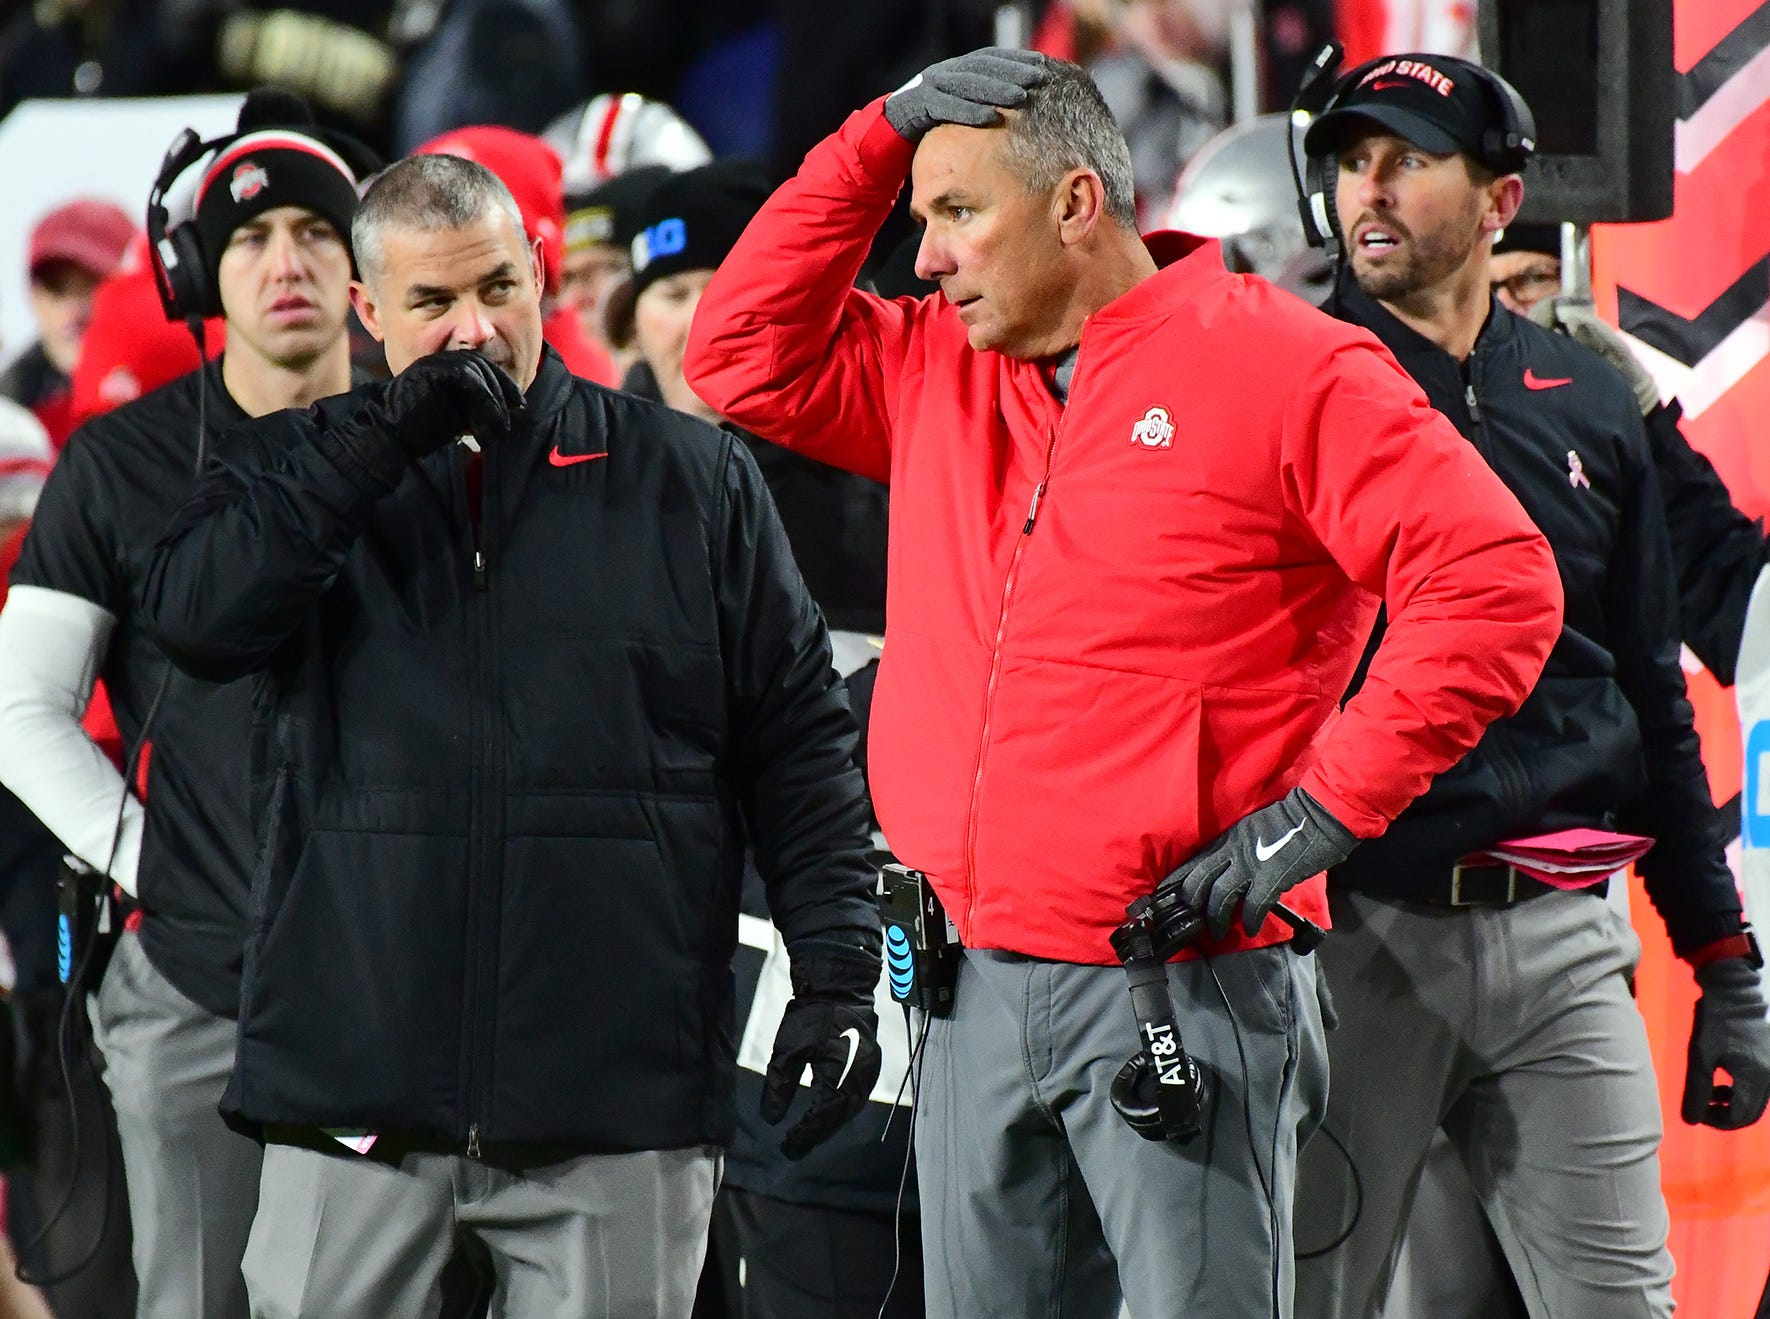 OSU coach Urban Meyer reacts as Purdue upsets Ohio State in West Lafayette on Saturday October 20, 2018.